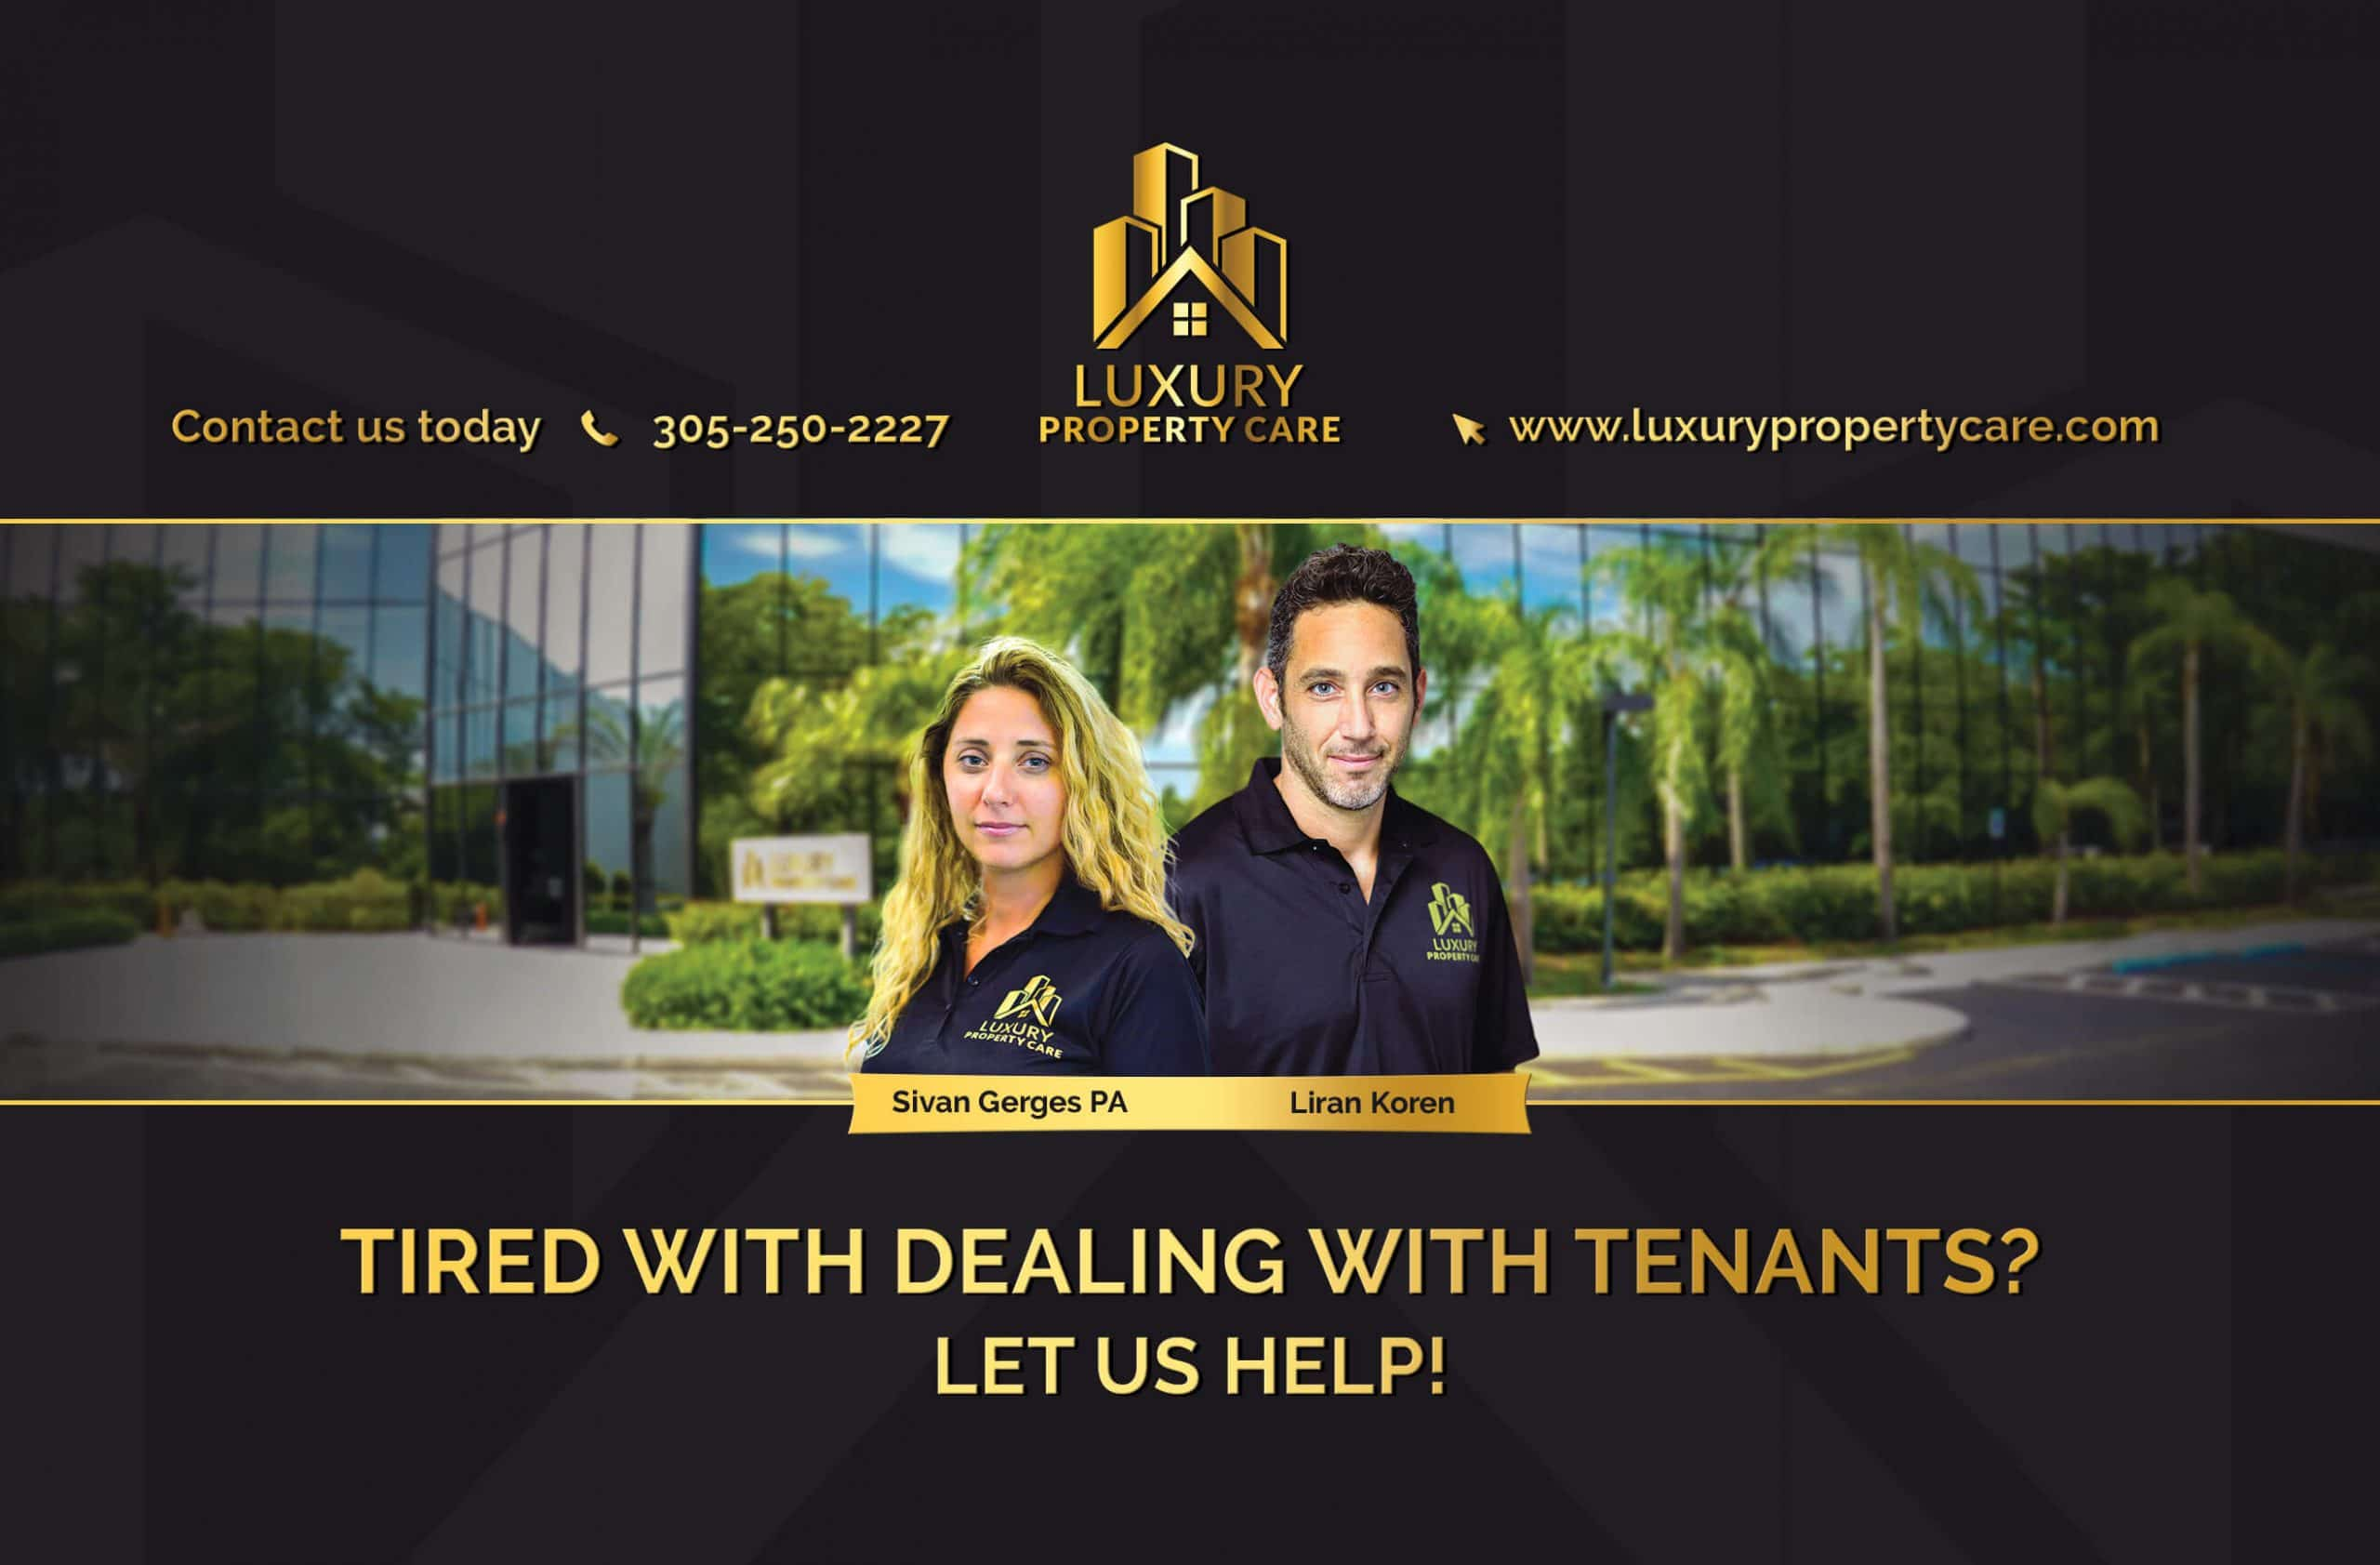 Luxury property care: your trusted townhouse management partner